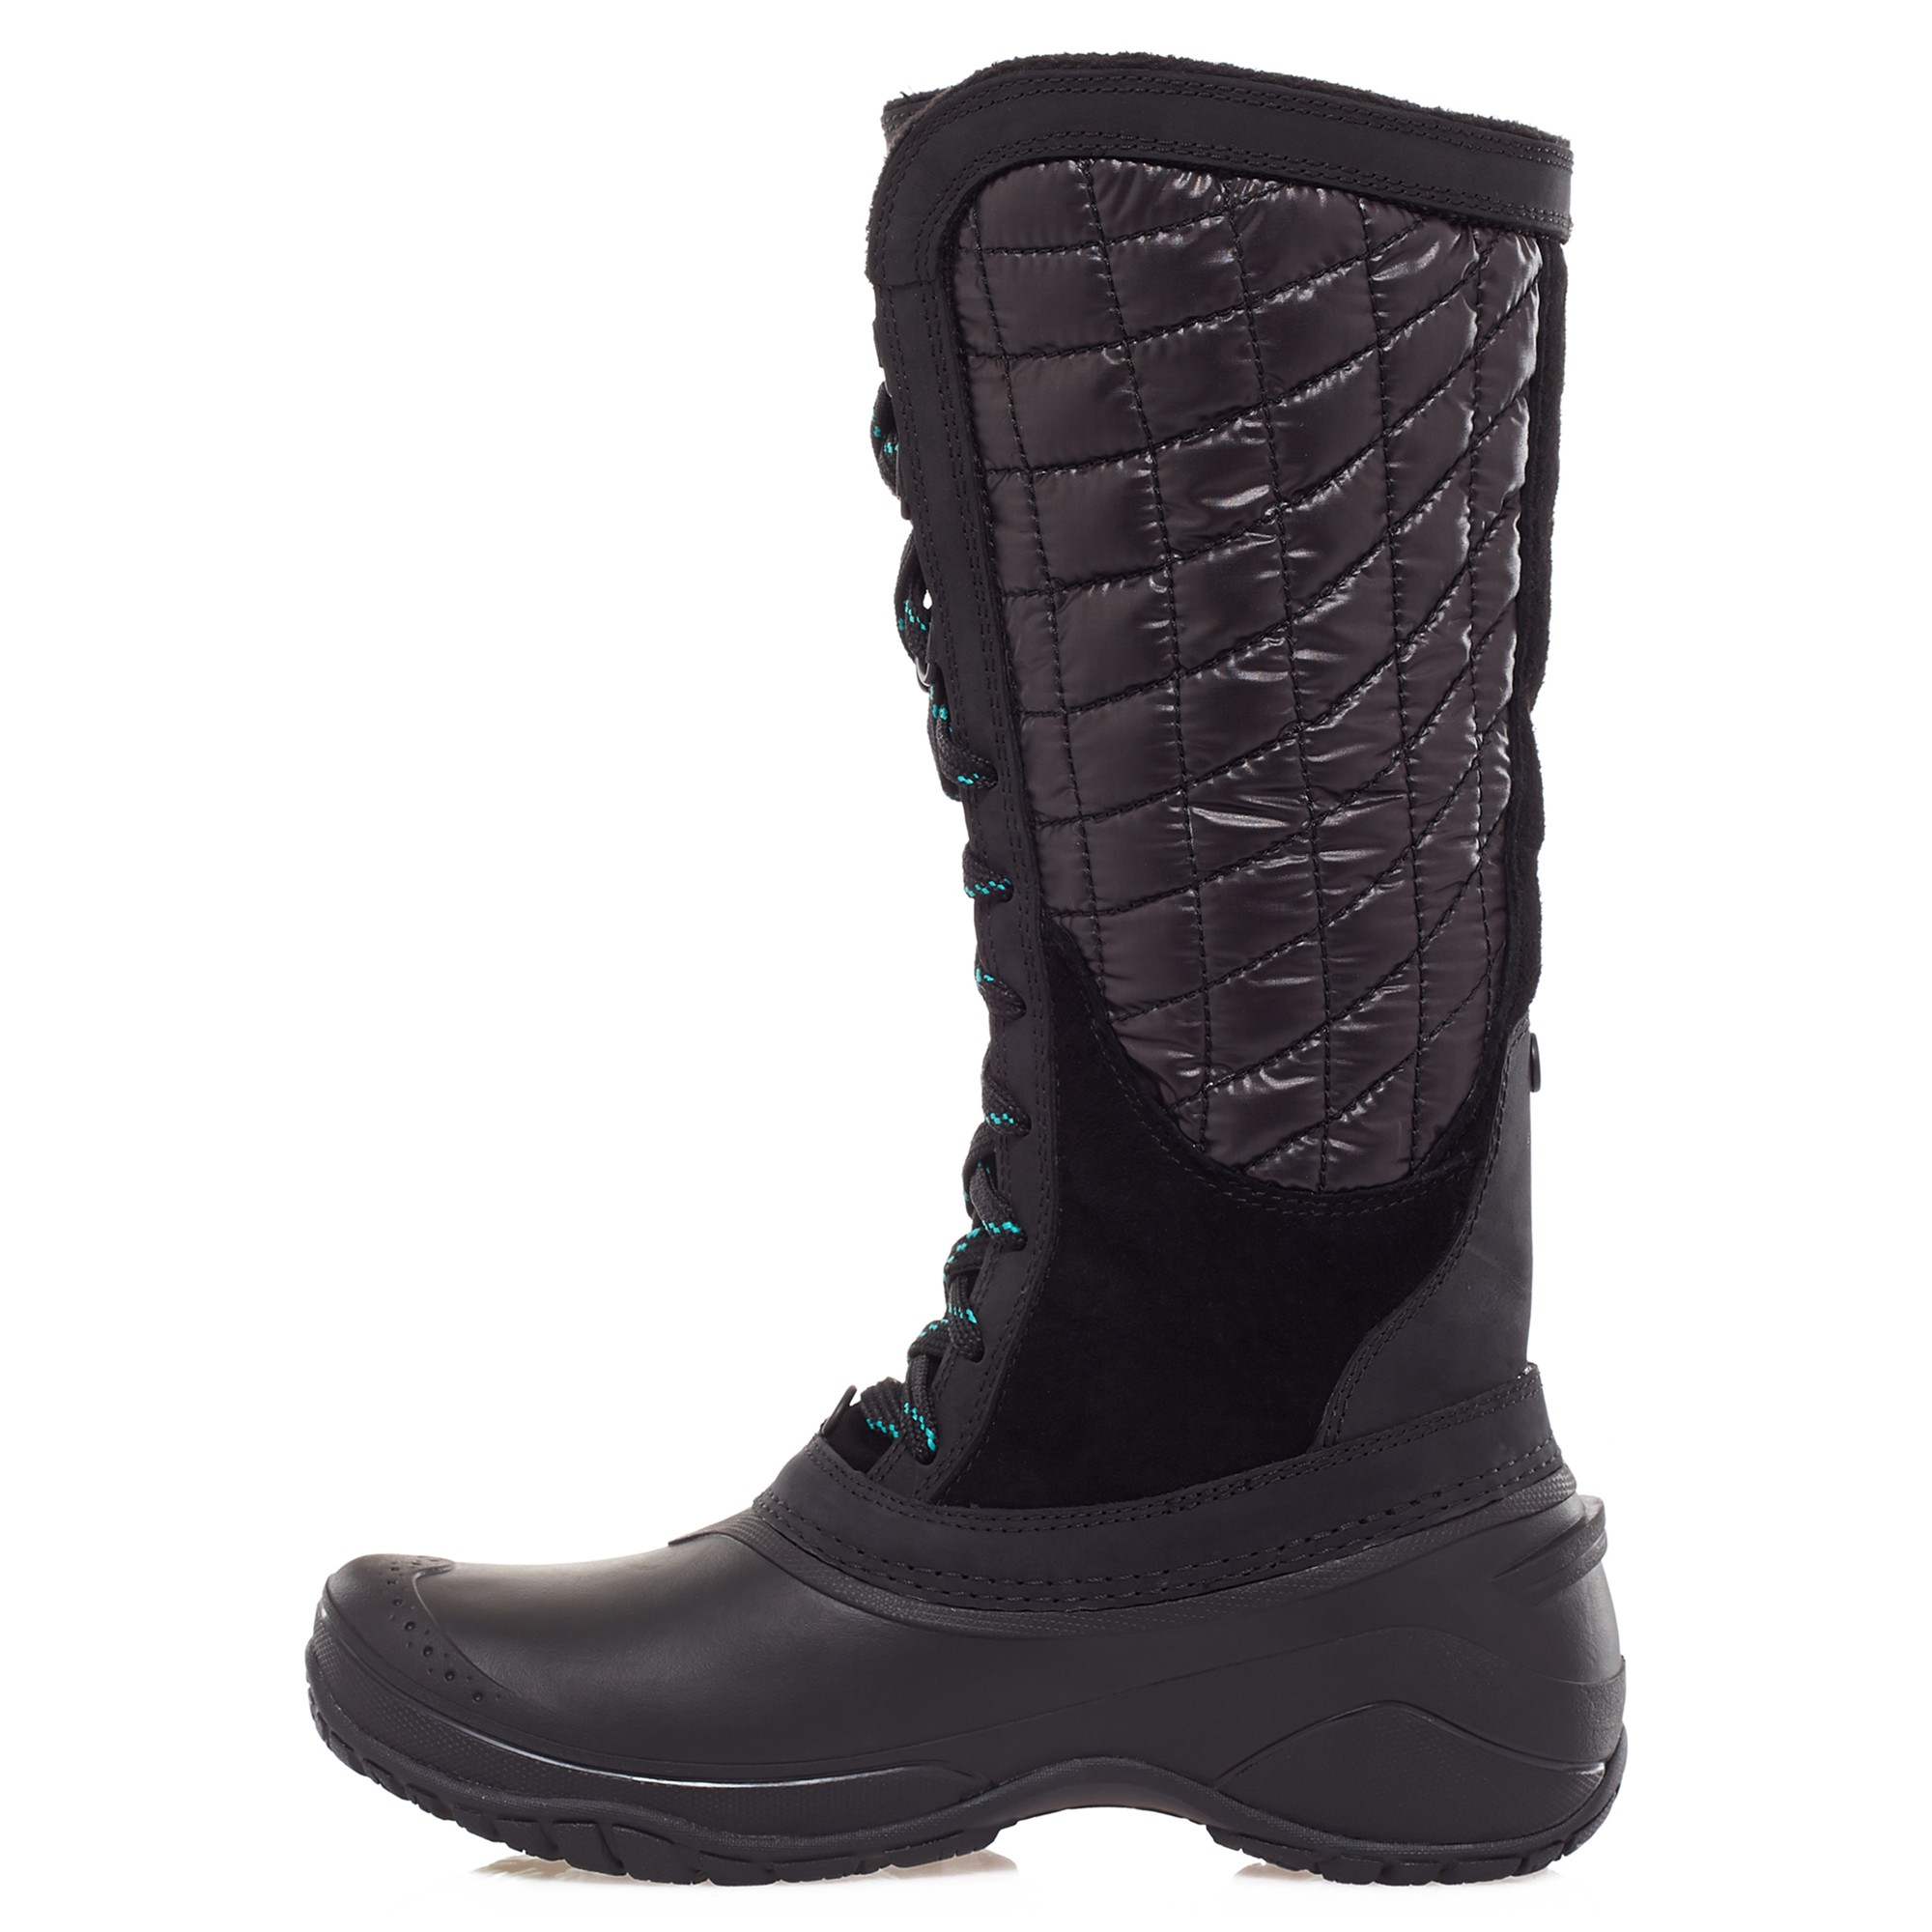 Lastest Burnetie Womens Snow Boots High DB Black  IWomenShoes